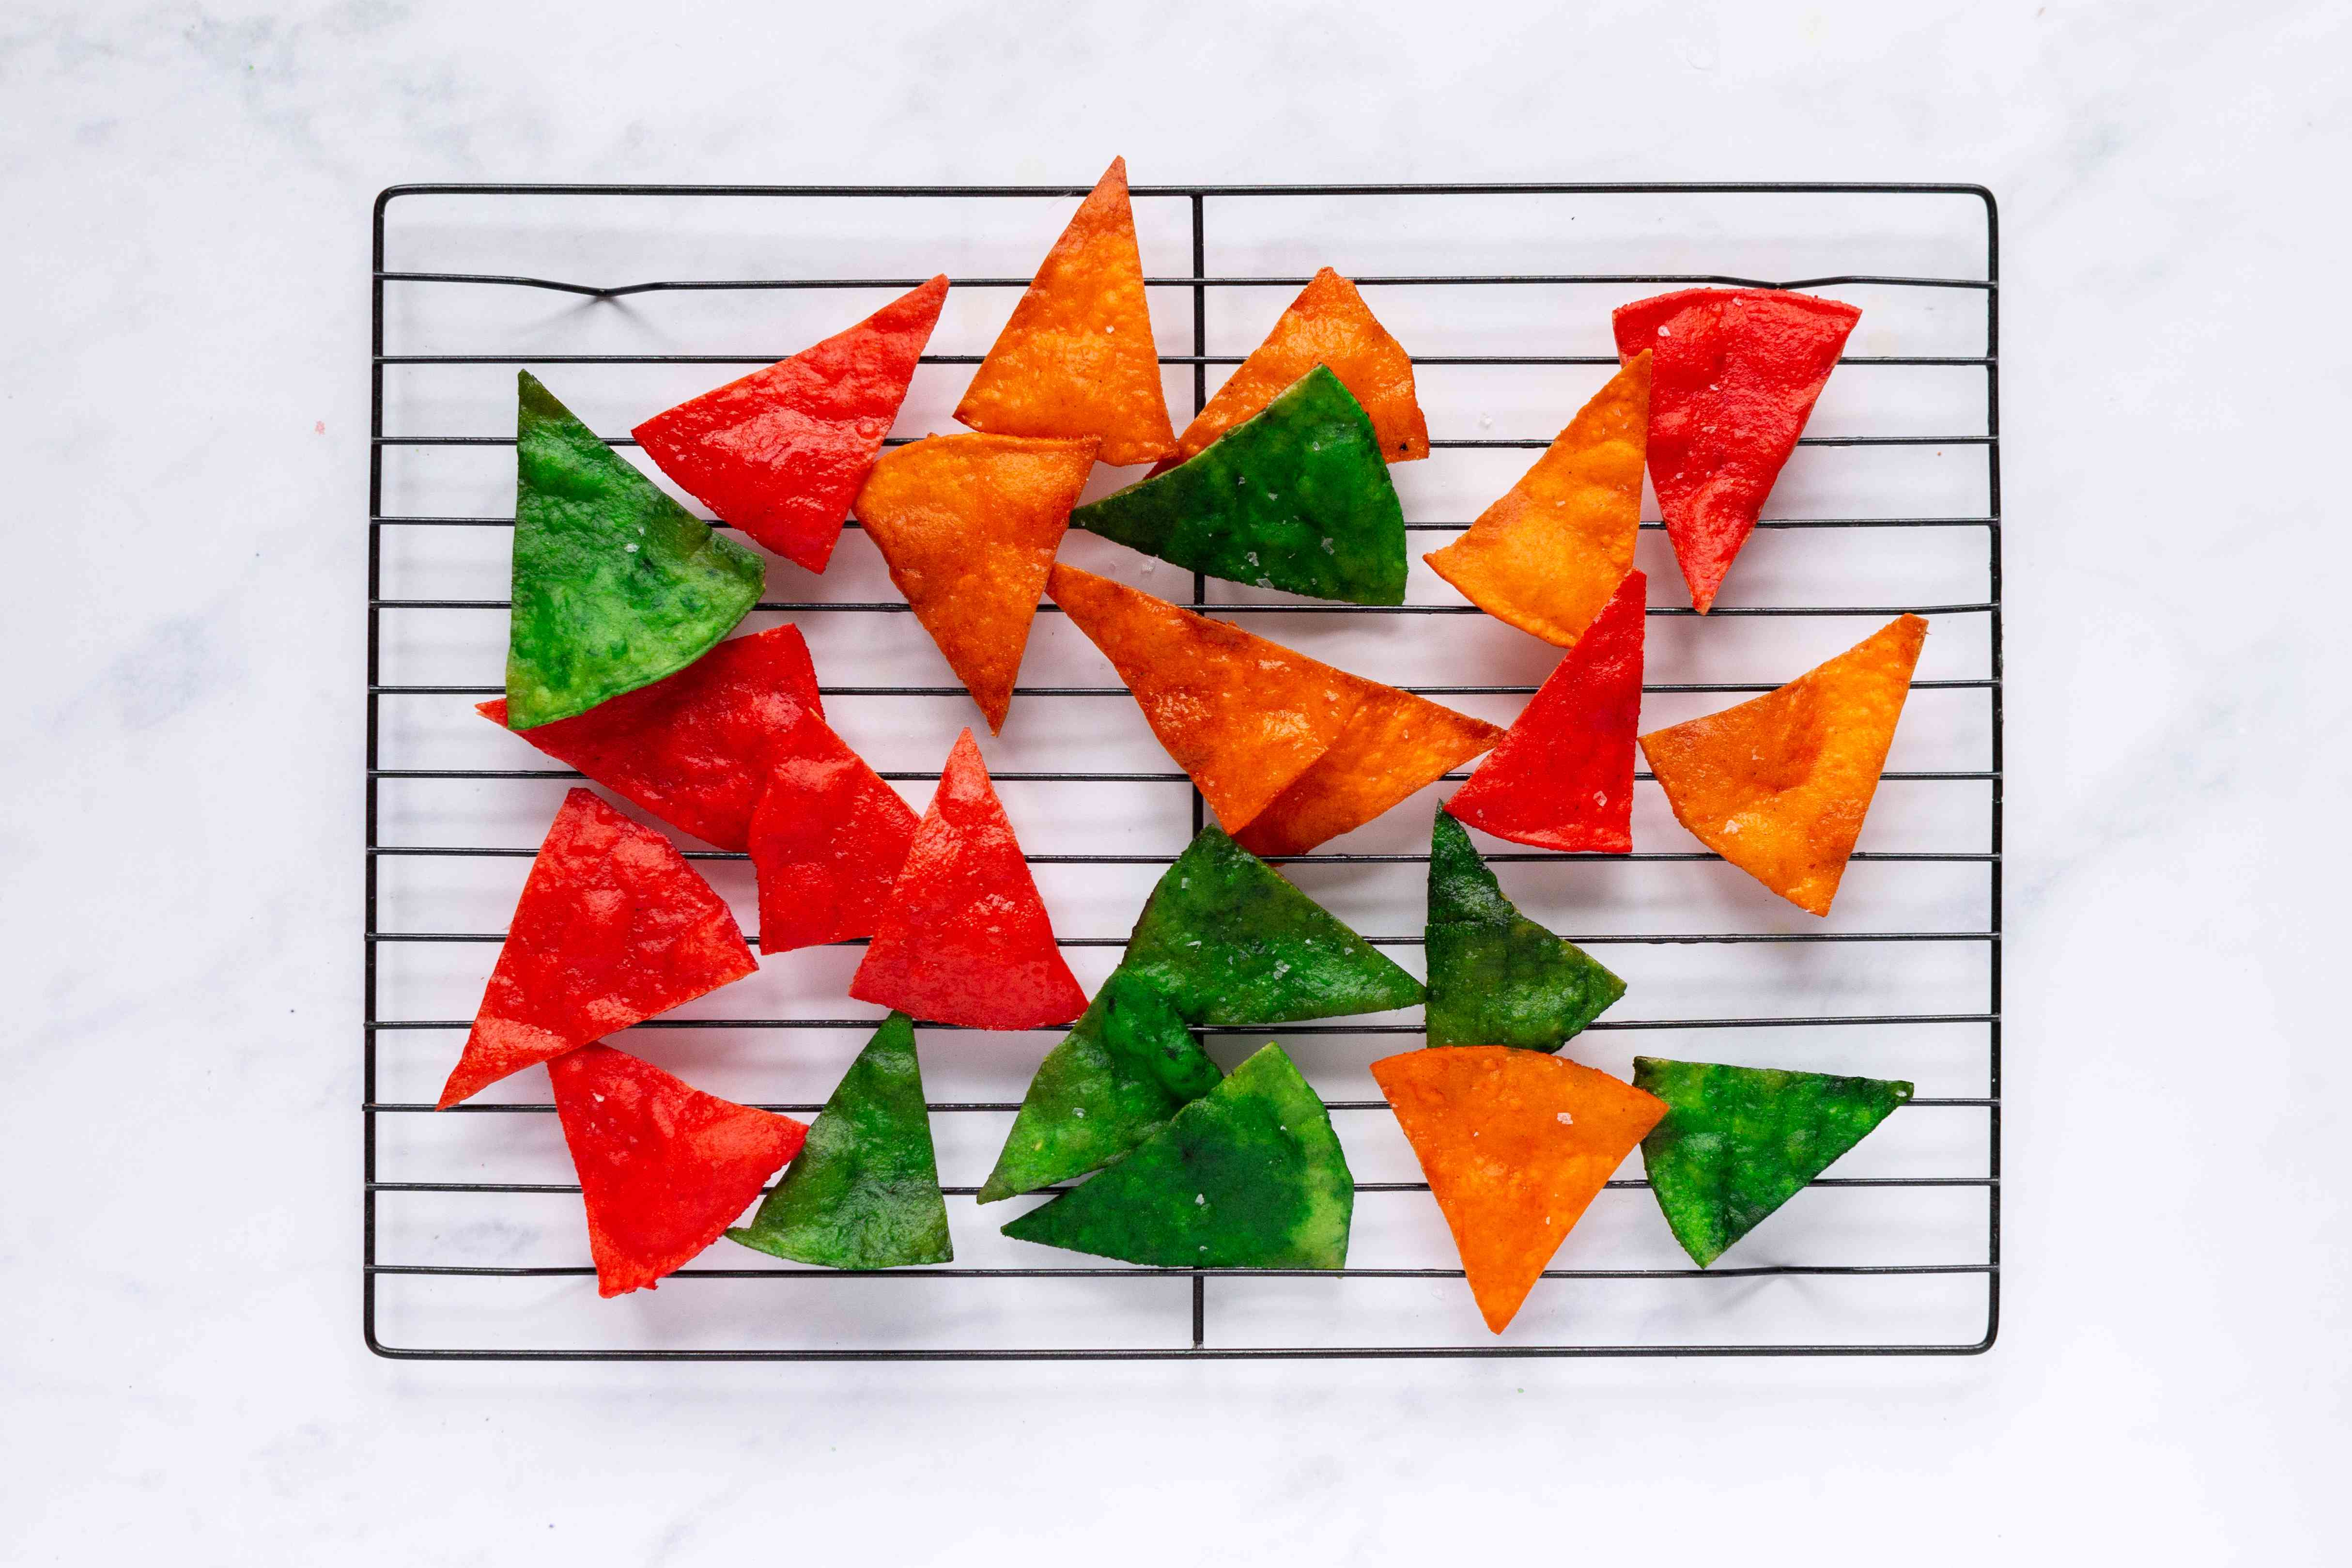 Multicolored Totopos on a cooling rack